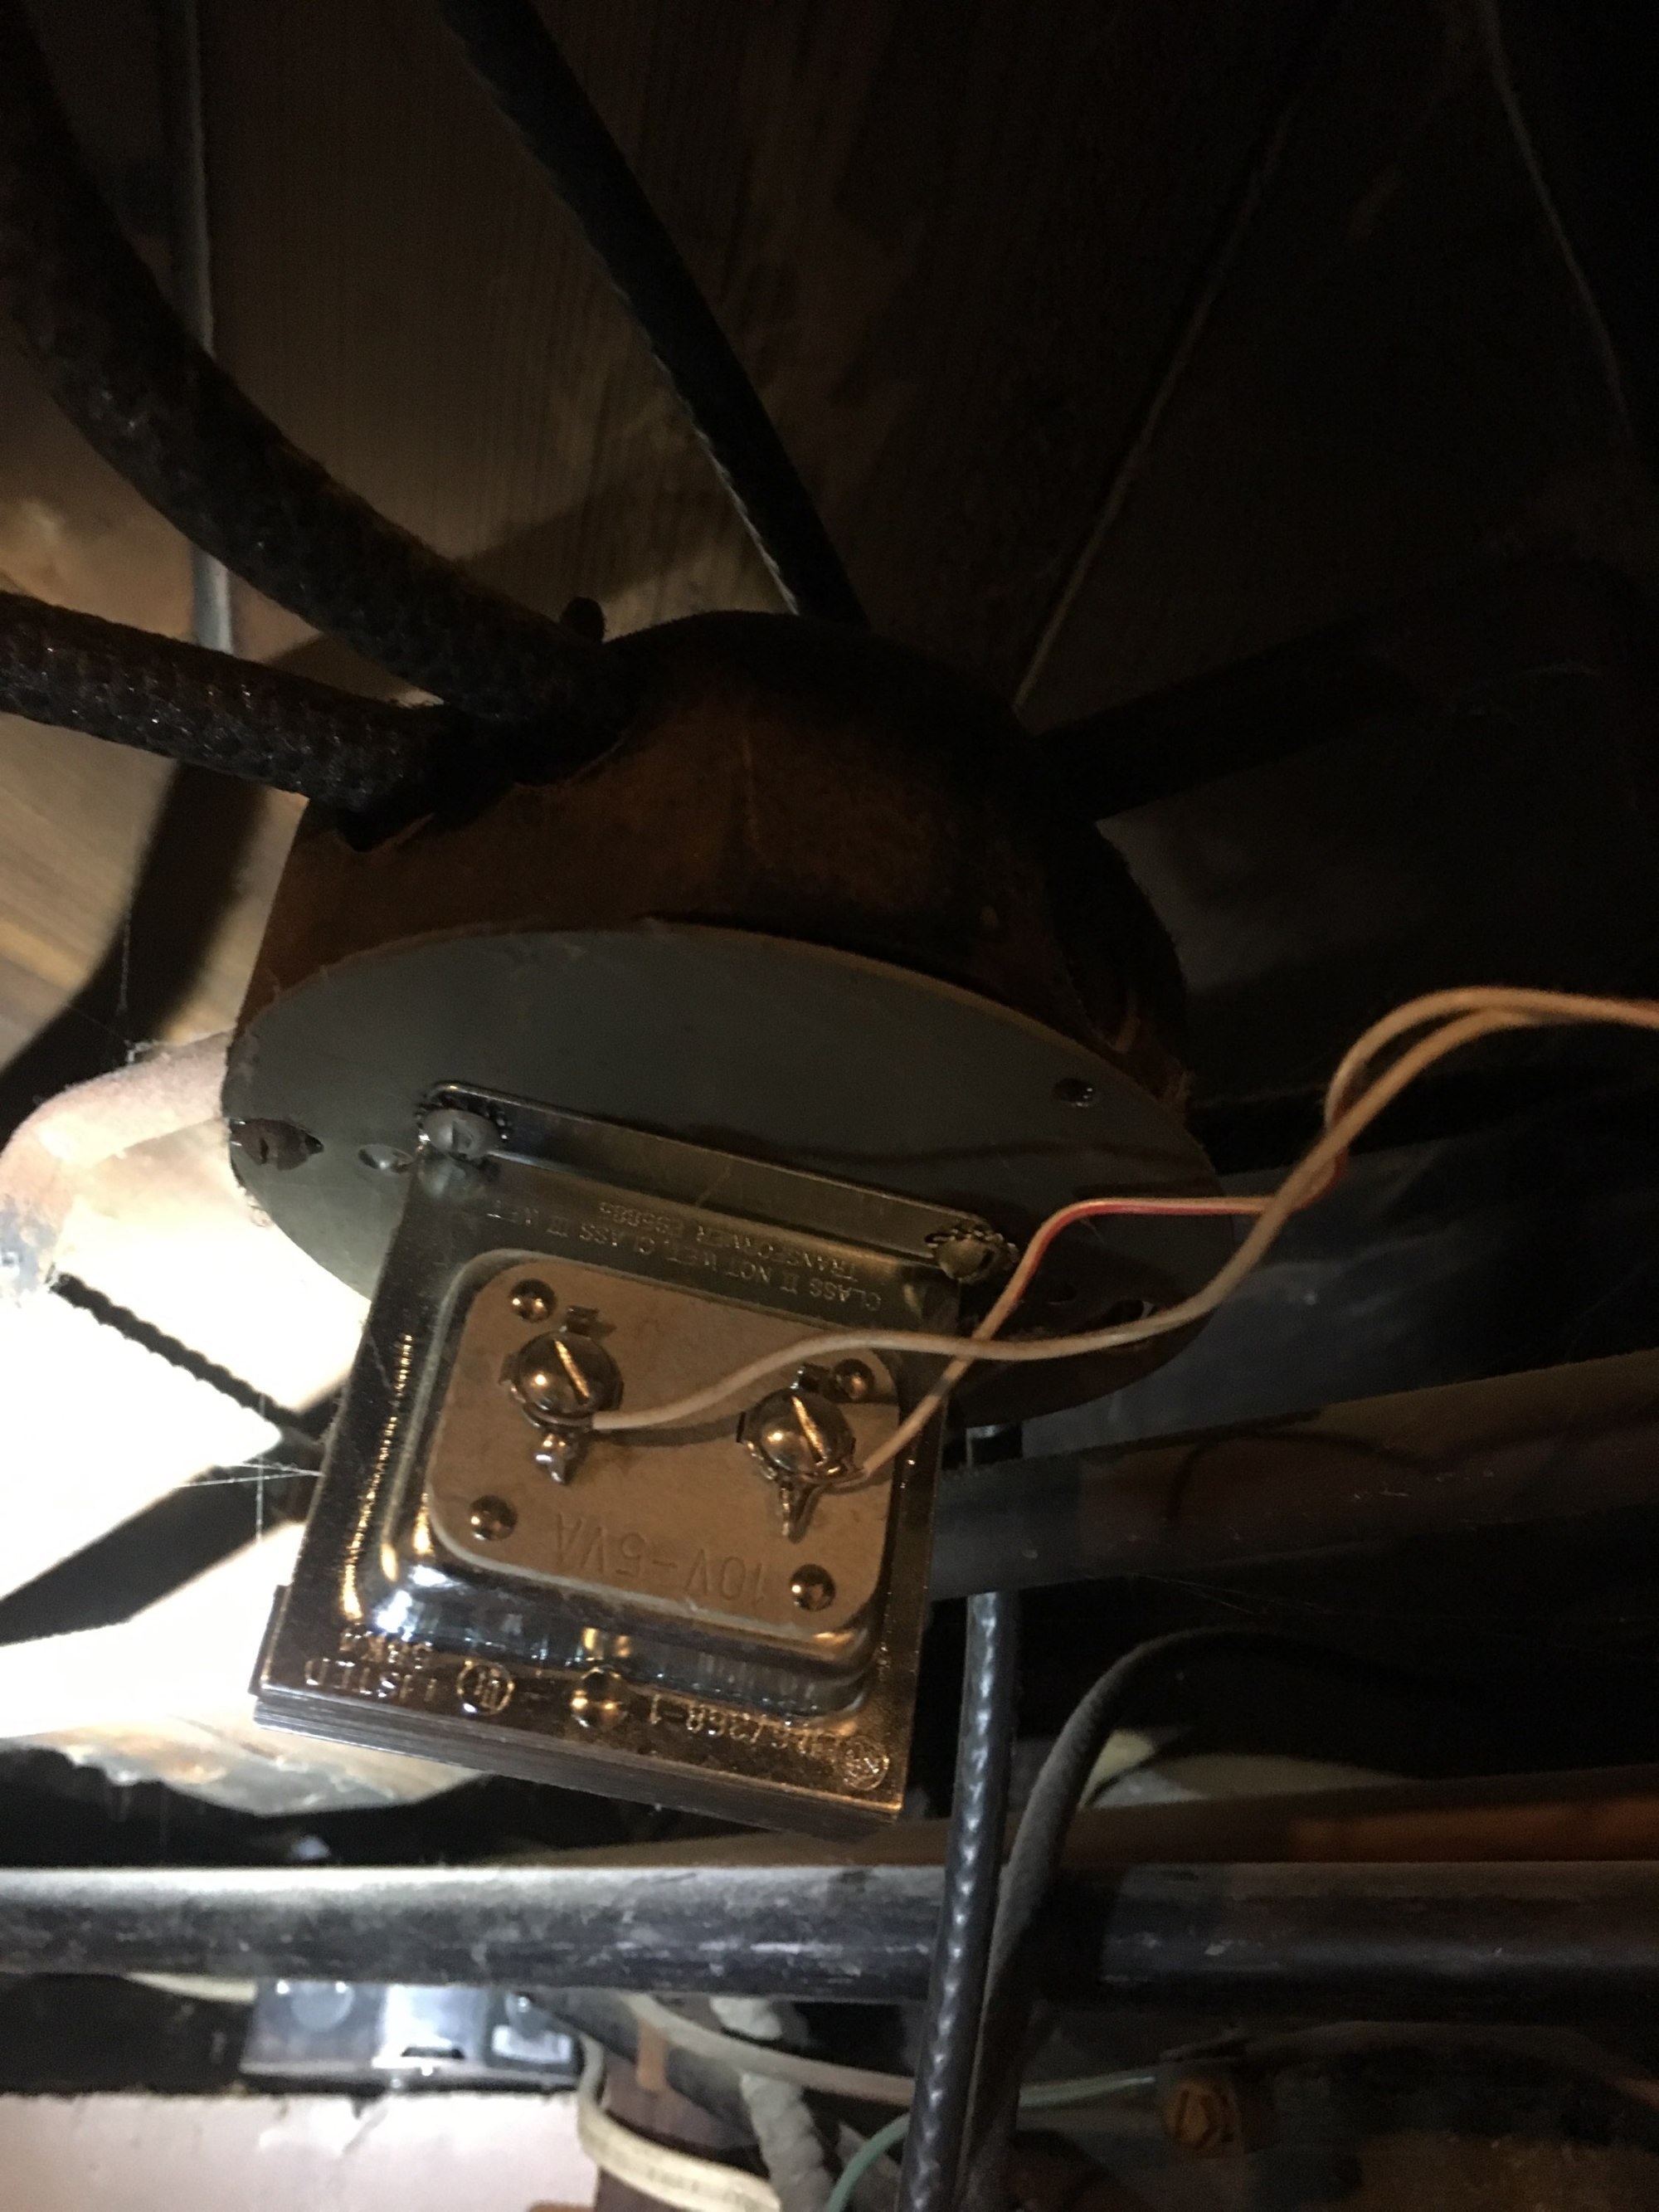 hight resolution of existing low voltage transformer located in basement that did not provide enough power for the